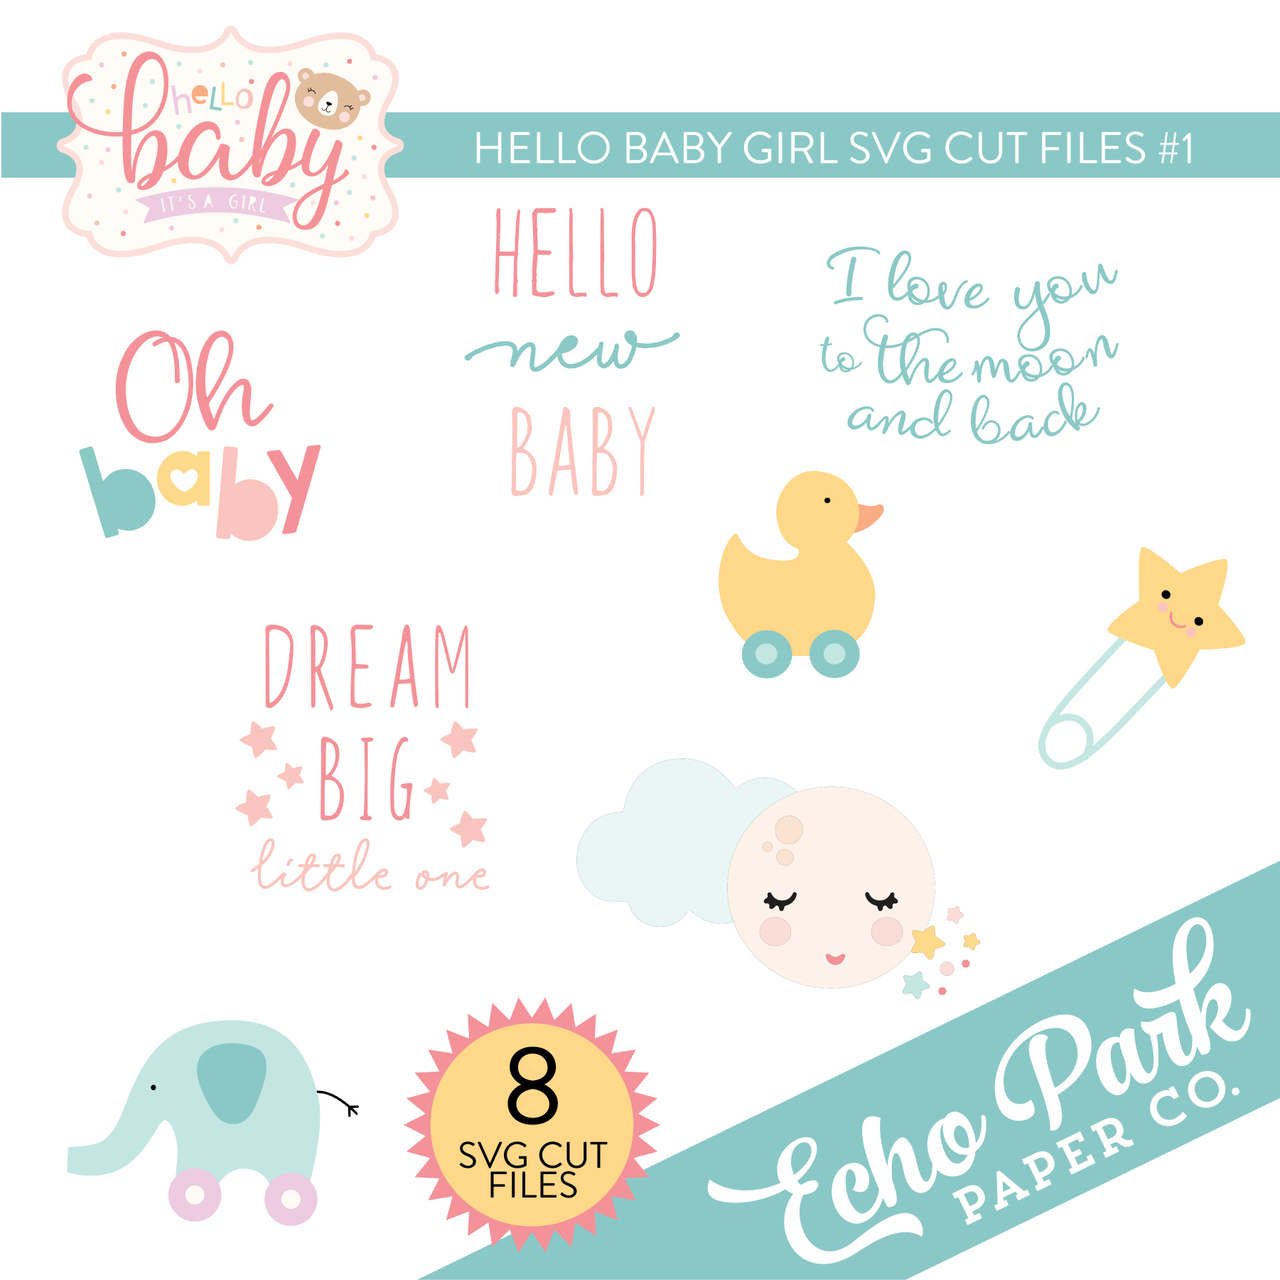 Hello Baby Girl SVG Cut Files #1